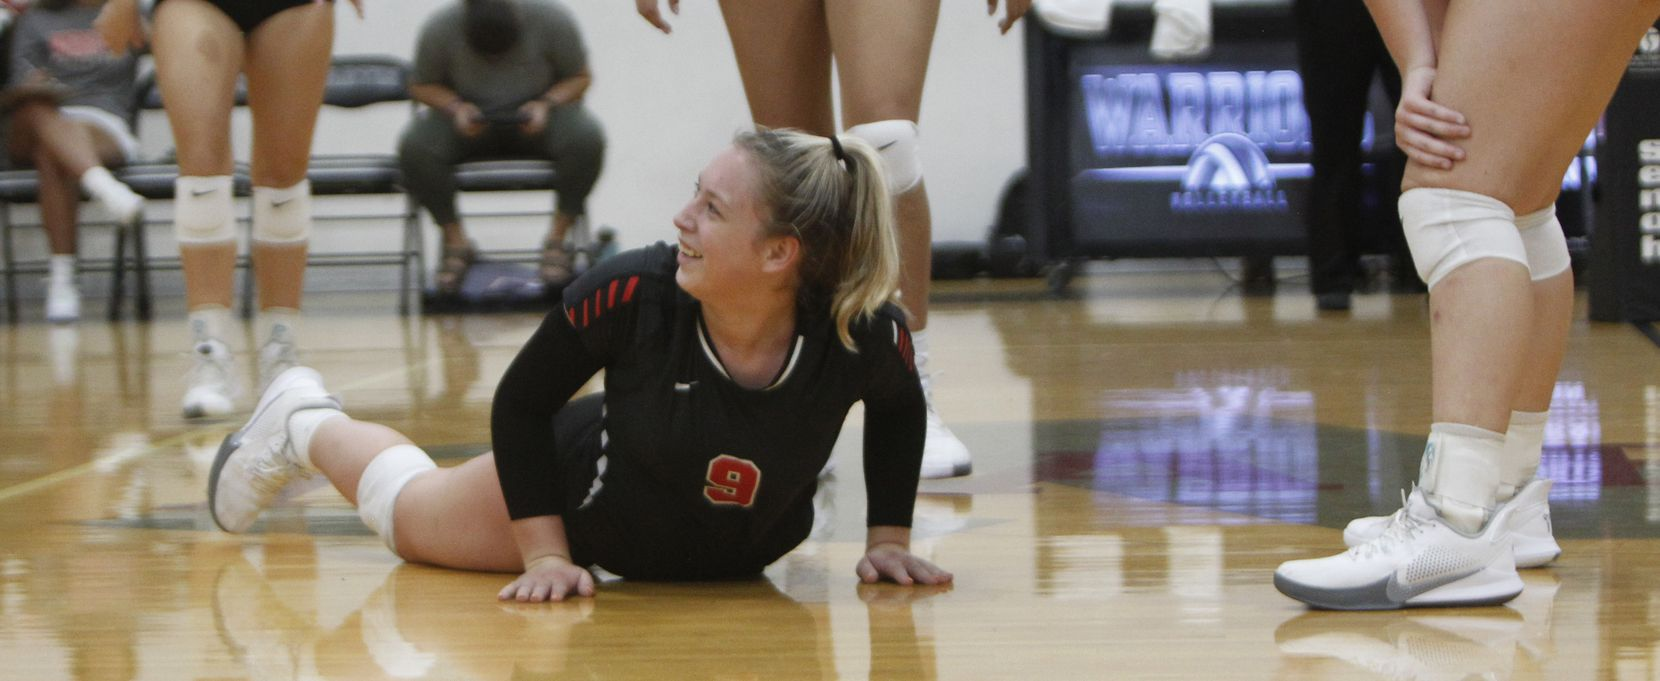 Arlington Martin's Mackenzie Mundell (9) was all smiles as she gets to her feet after making a diving attempt to keep the ball in play during second set play against South Grand Prairie. The two teams played their volleyball match at Arlington Martin High School in Arlington on September 14, 2021. (Steve Hamm/ Special Contributor)